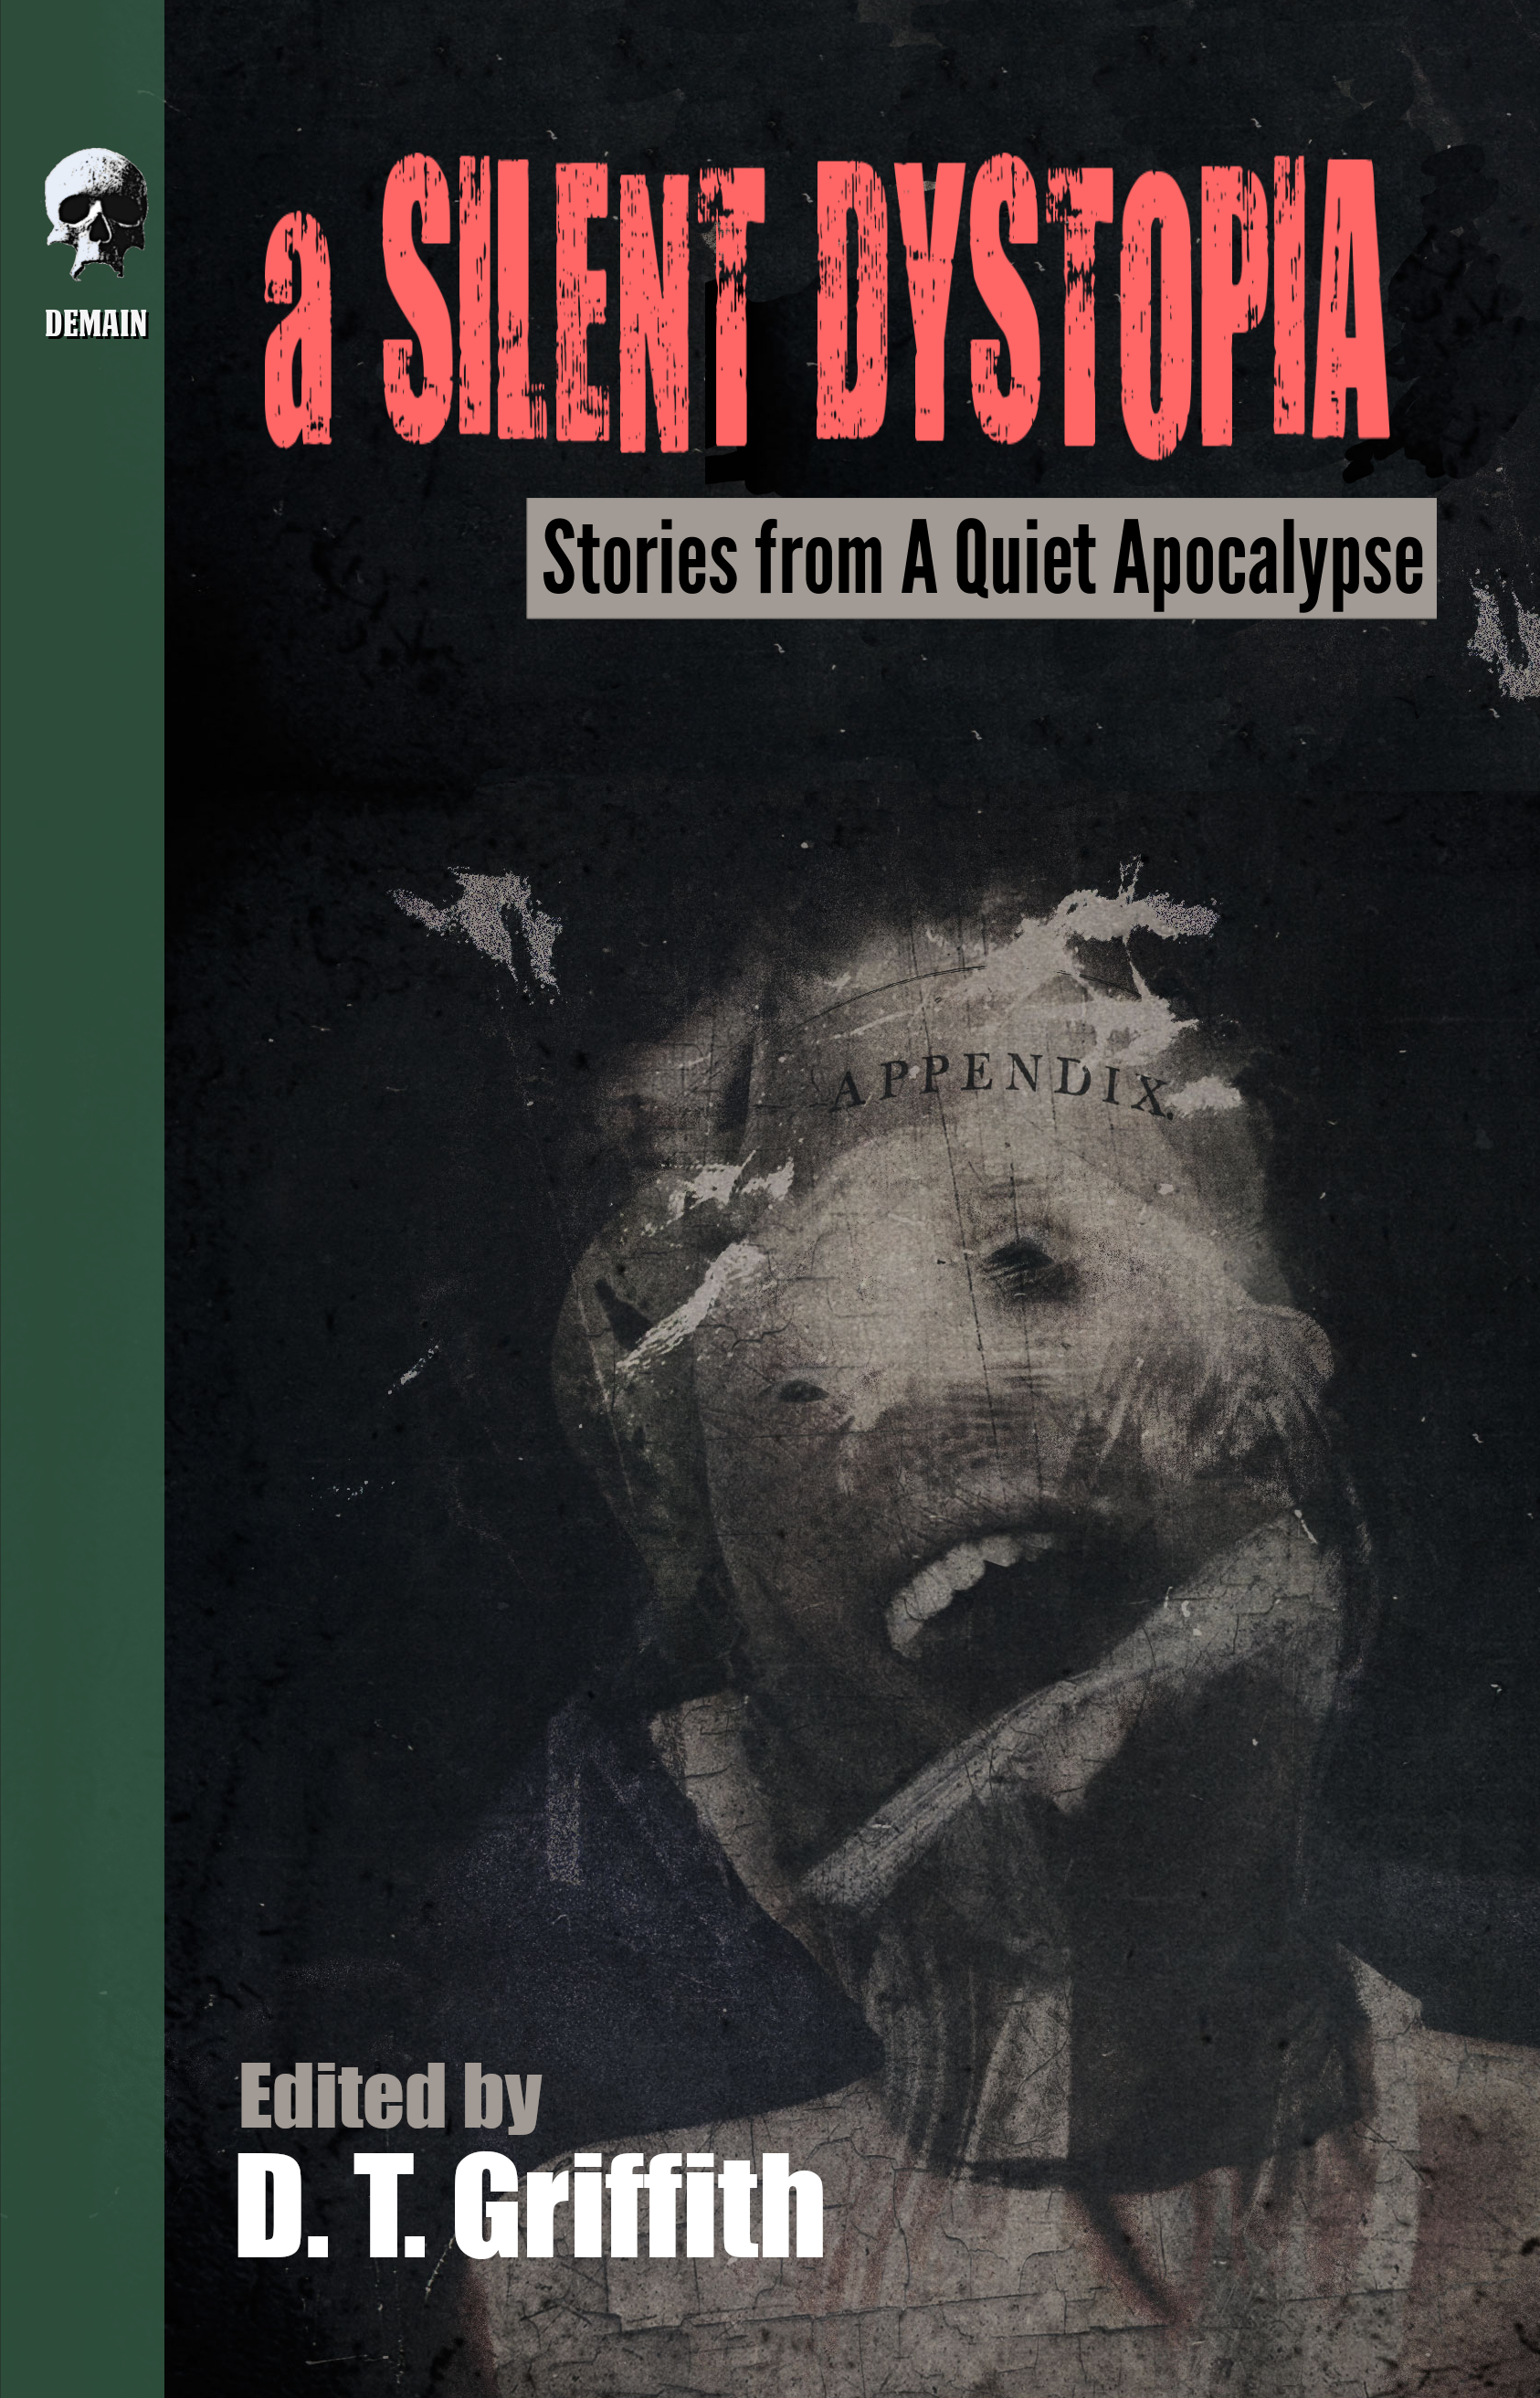 A Silent Dystopia: Stories from A Quiet Apocalypse edited by D.T. Griffith